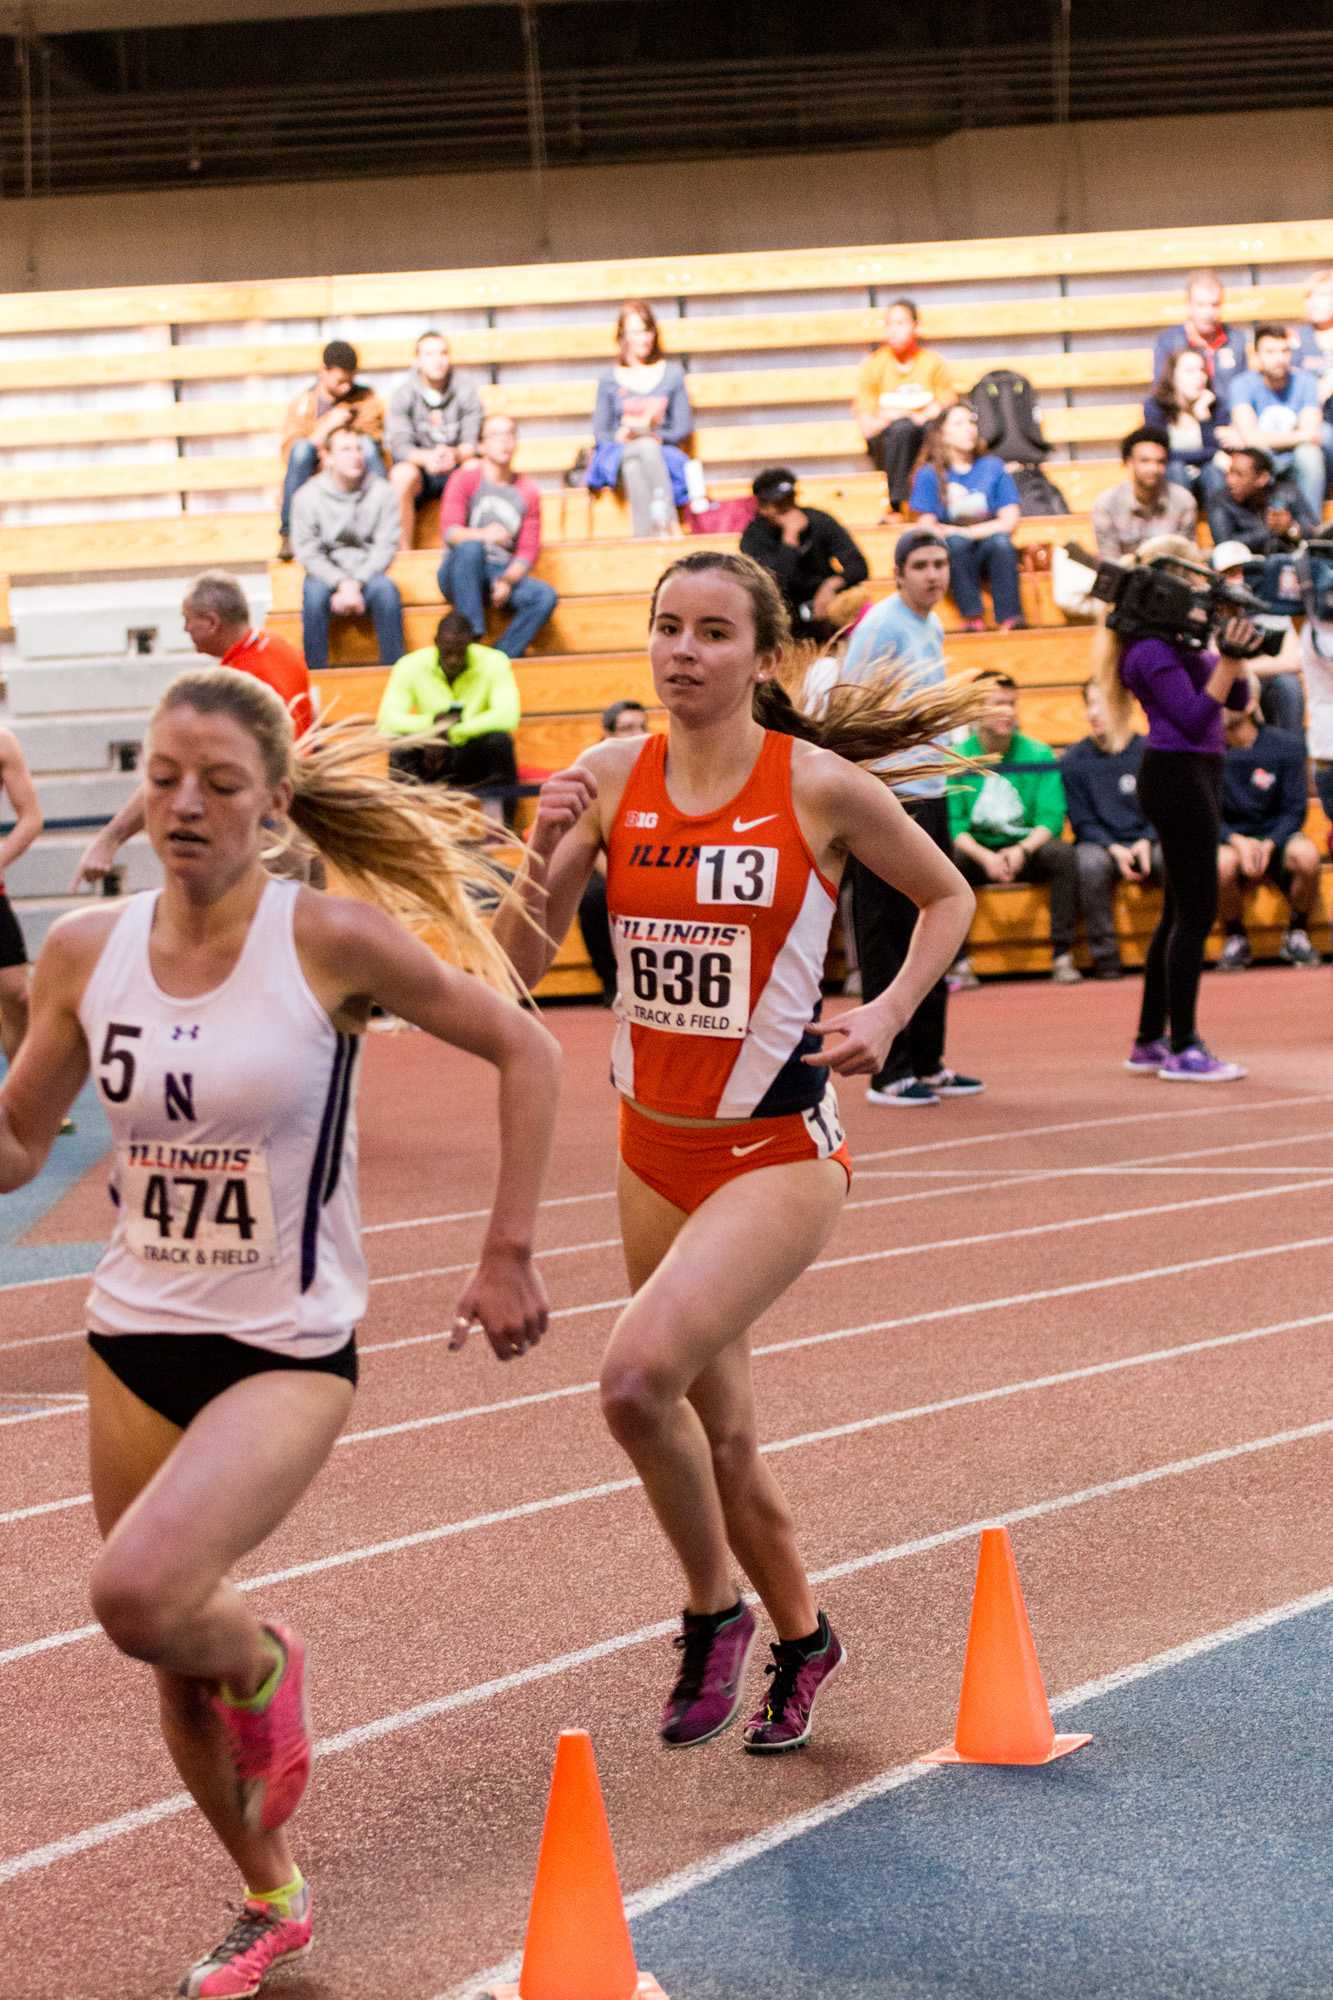 Illinois' Valerie Bobart competes in the 1 mile run during the Orange and Blue meet on Saturday, February 20, 2016. Valerie placed 9th in the mile with a time of 5:08.32.